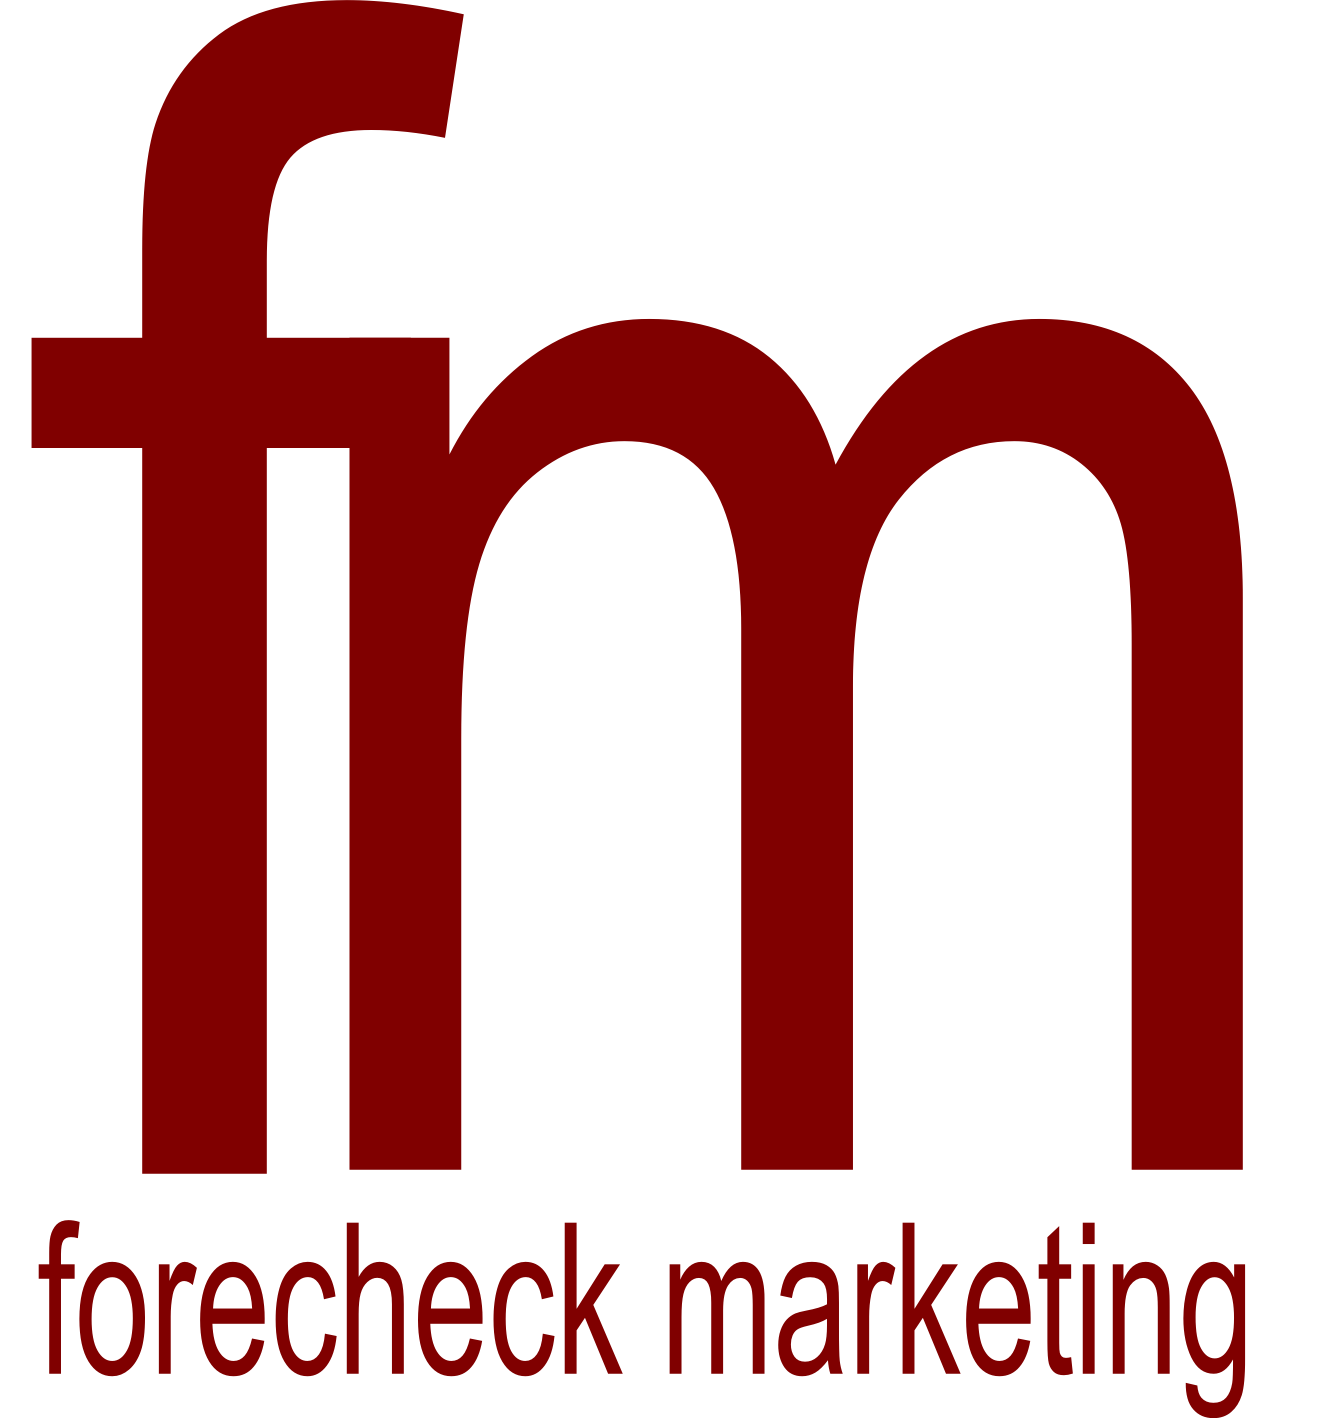 Forecheck Marketing